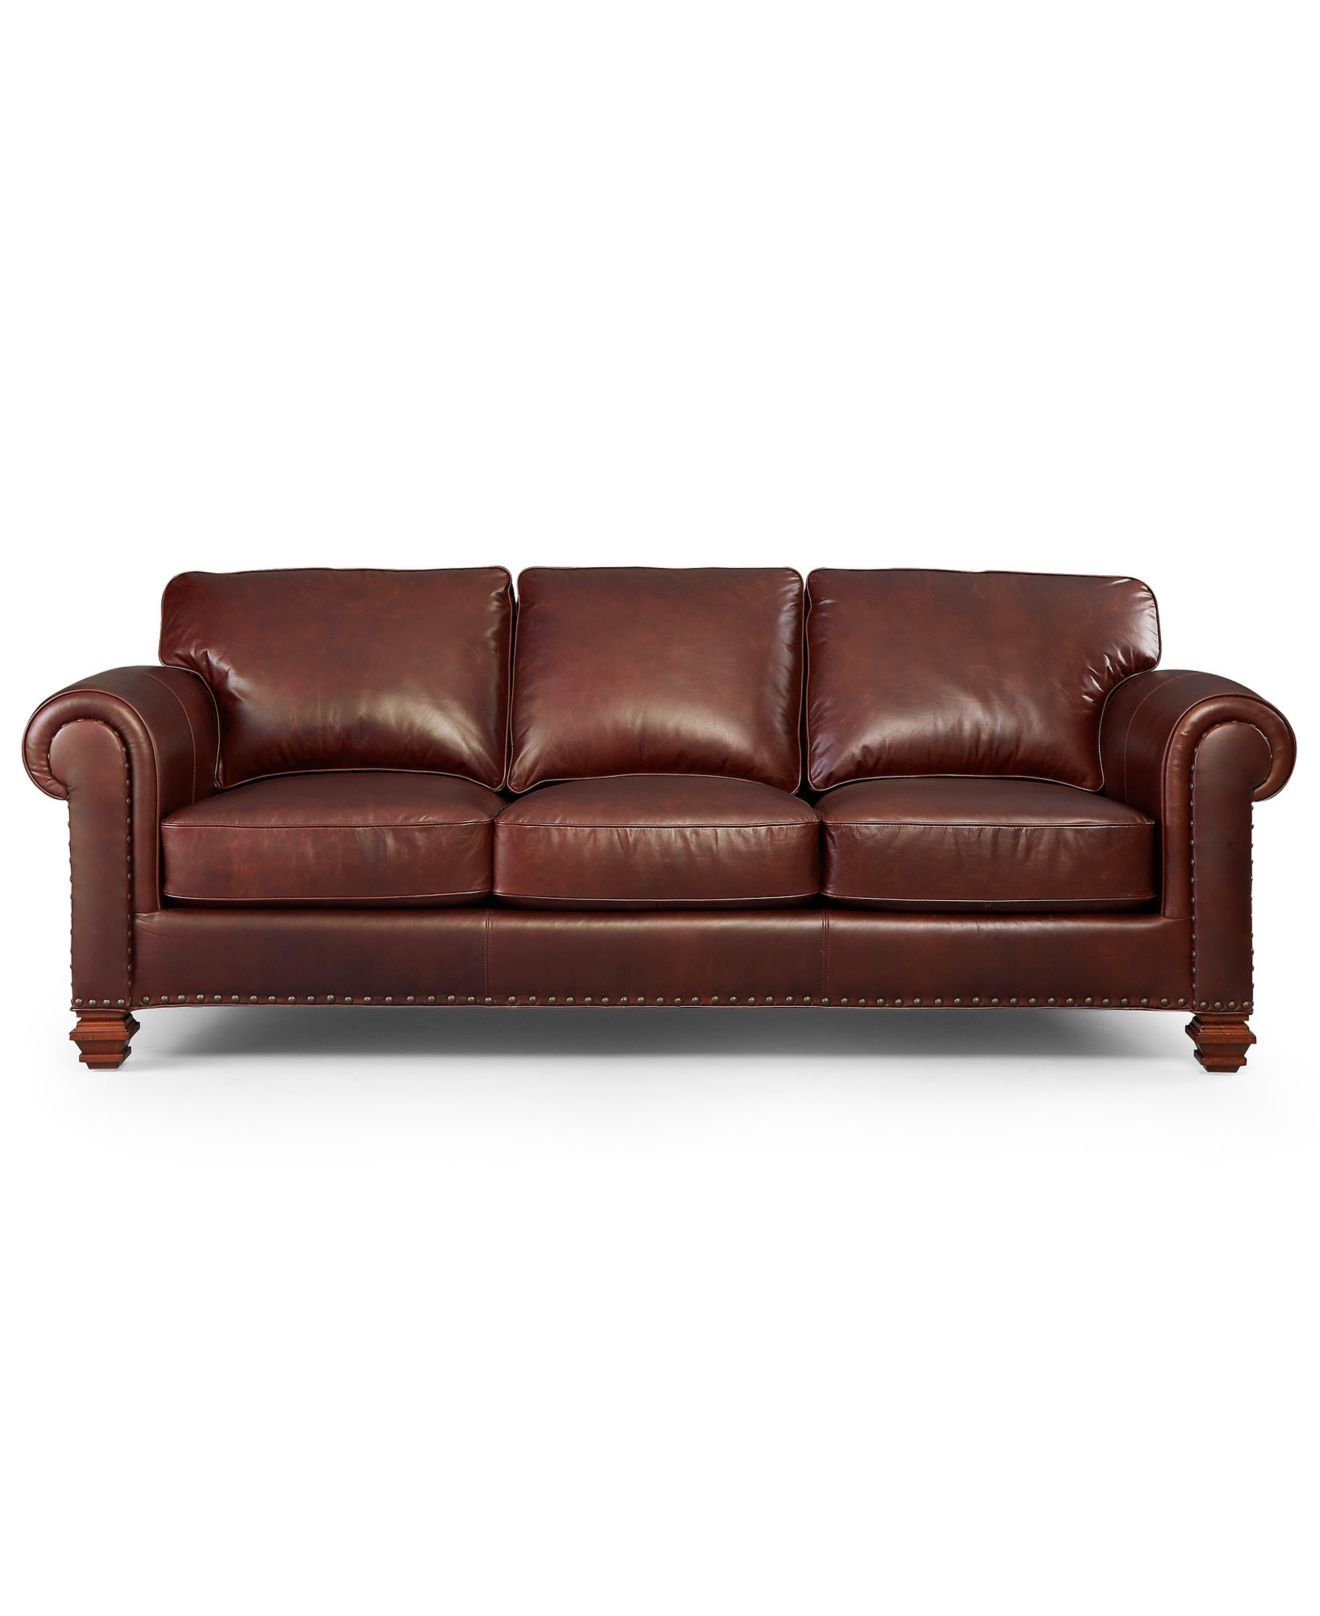 Lauren Ralph Lauren Leather Sofa Stanmore Living Room Furniture